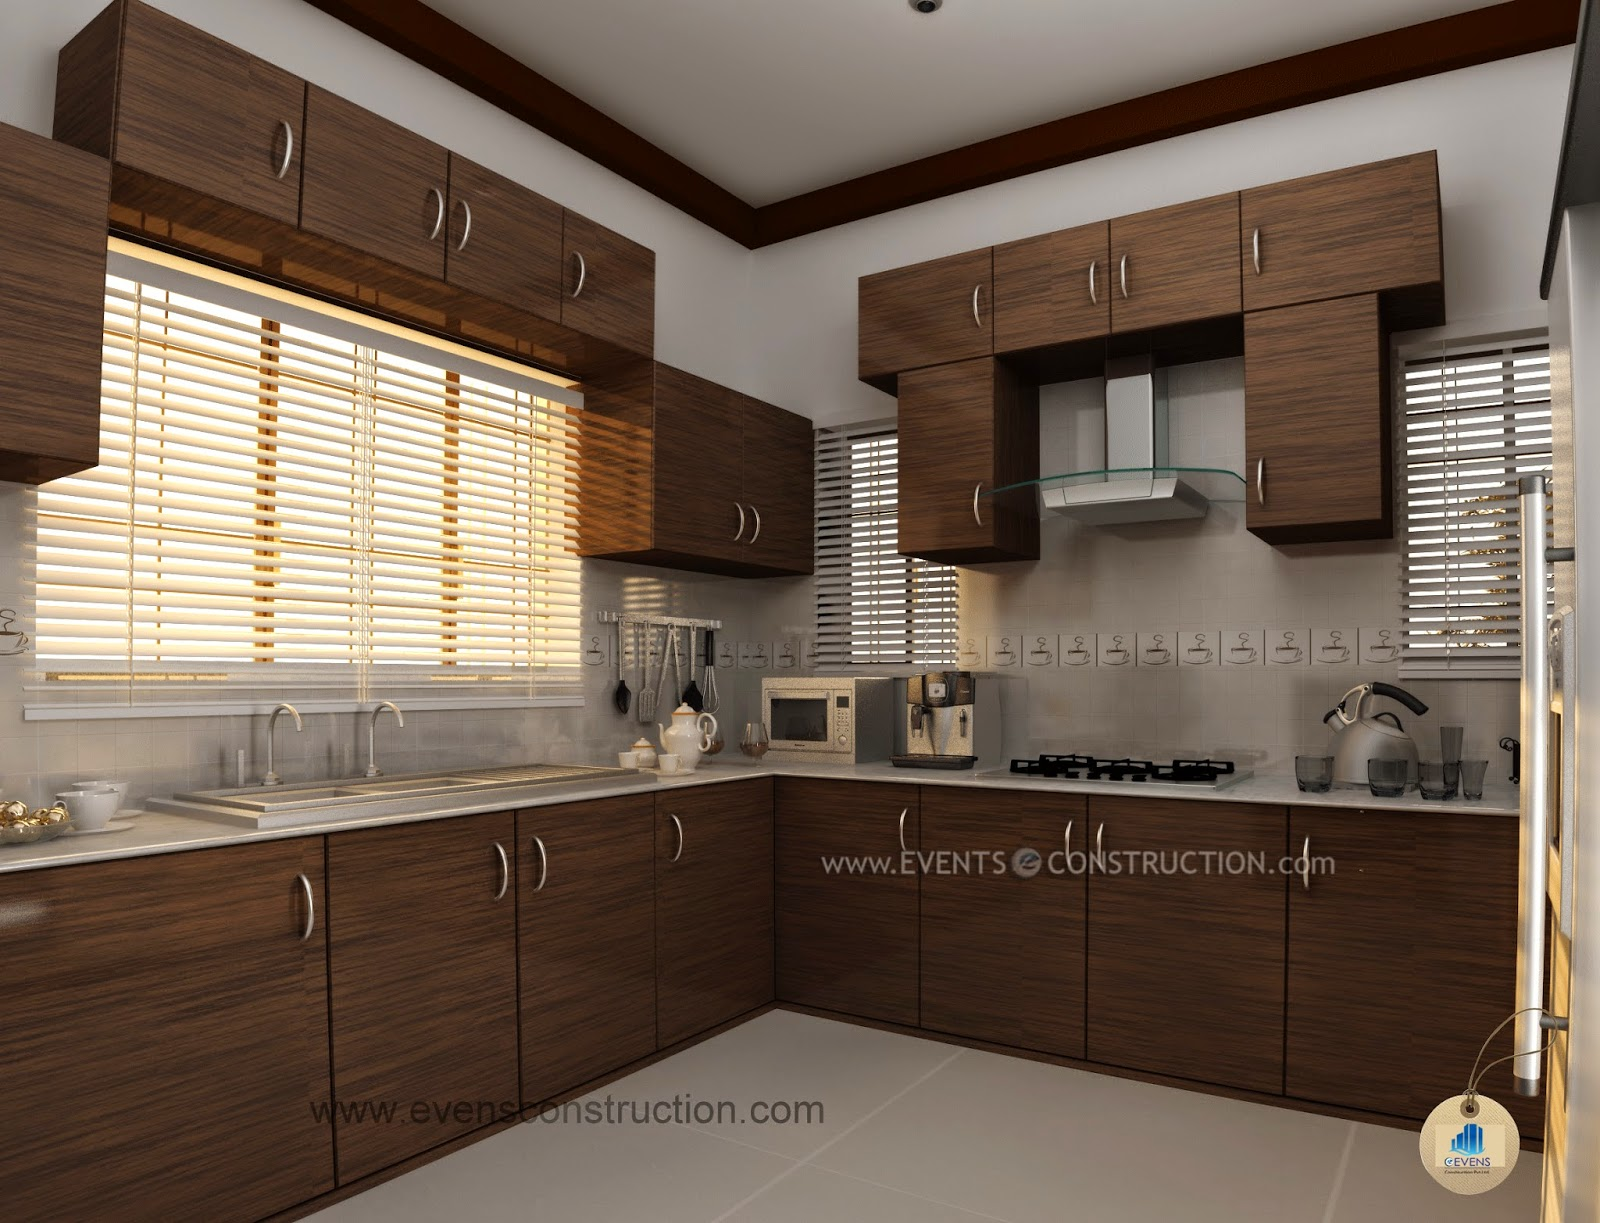 Evens construction pvt ltd july 2014 for Kitchen designs kerala